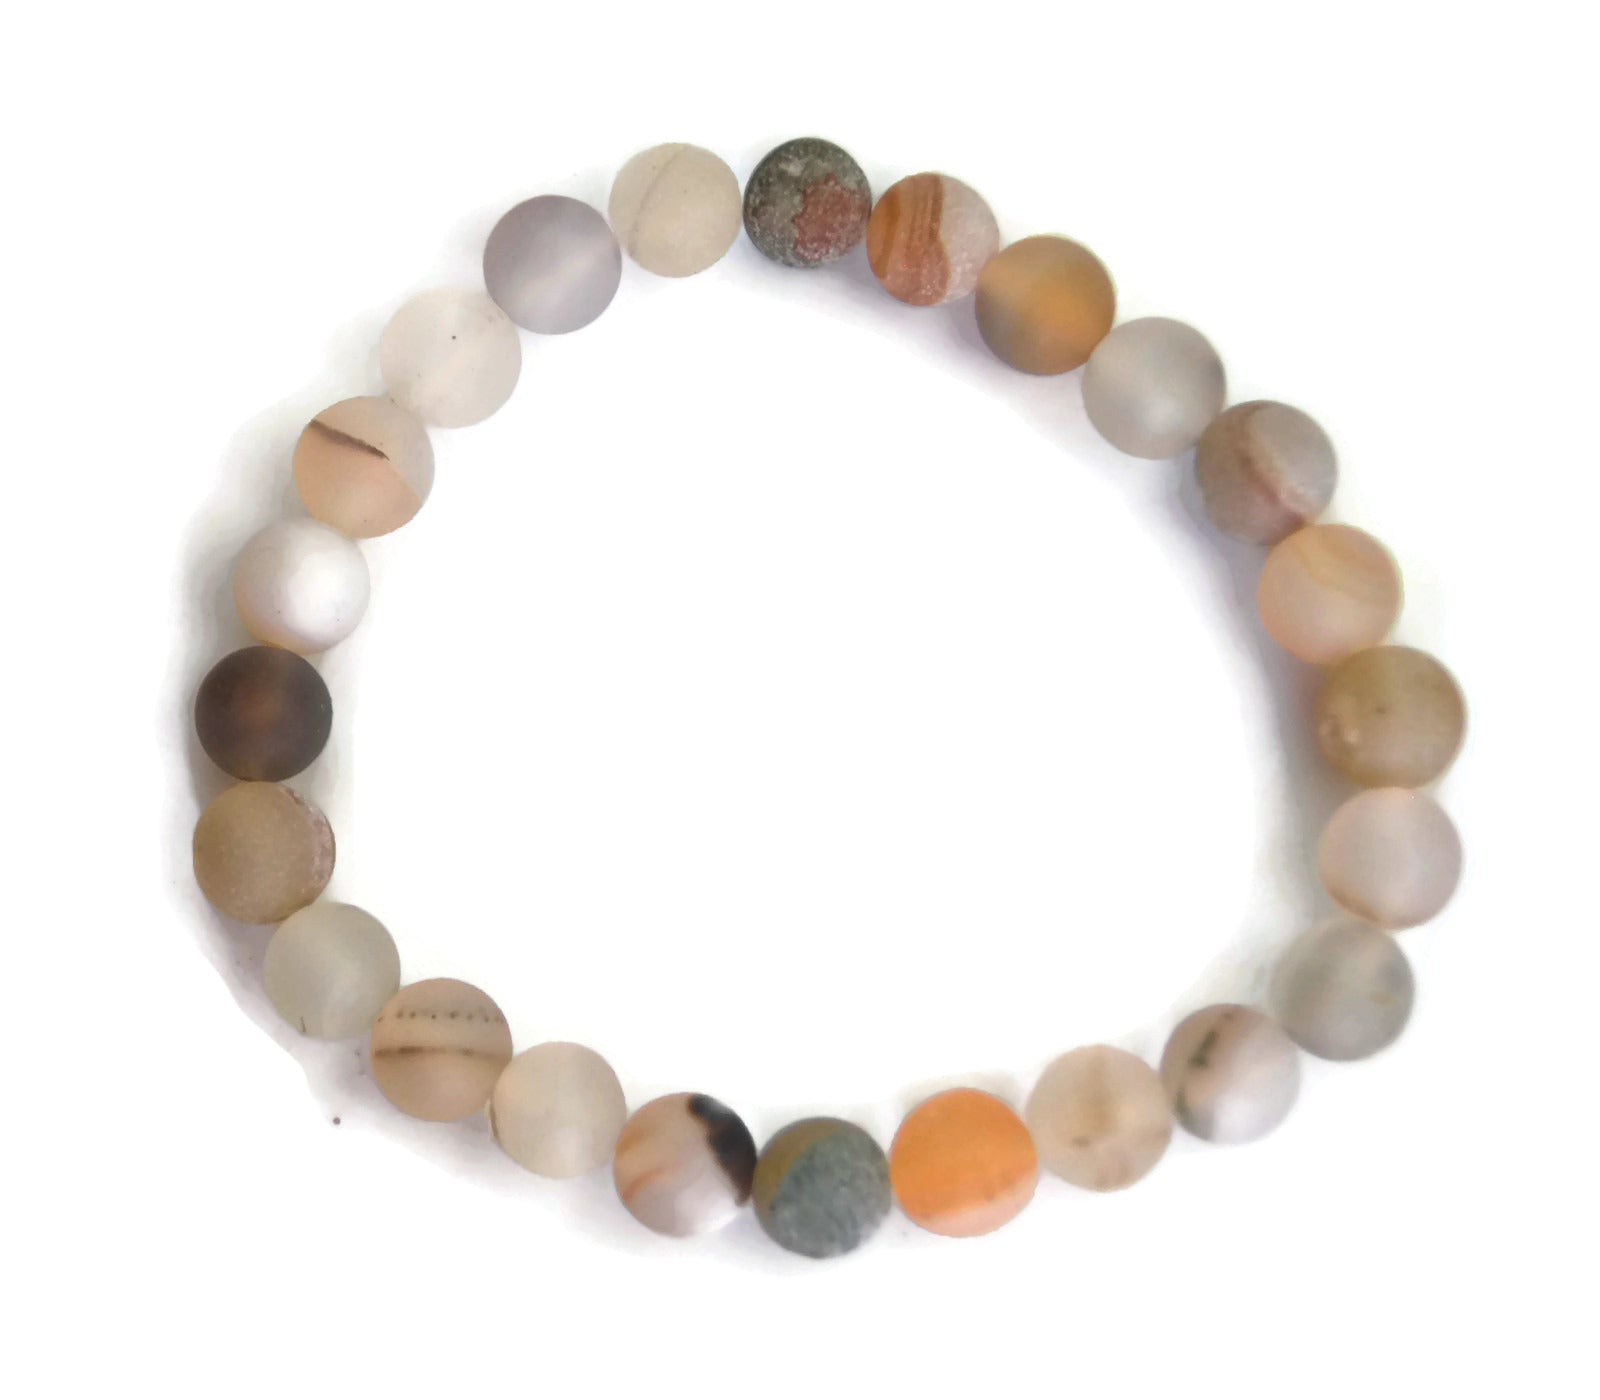 Lotus Line White Dzi Bead Stone Meditation Yoga Wrist Mala Stretch Bracelet, Root Base Chakra